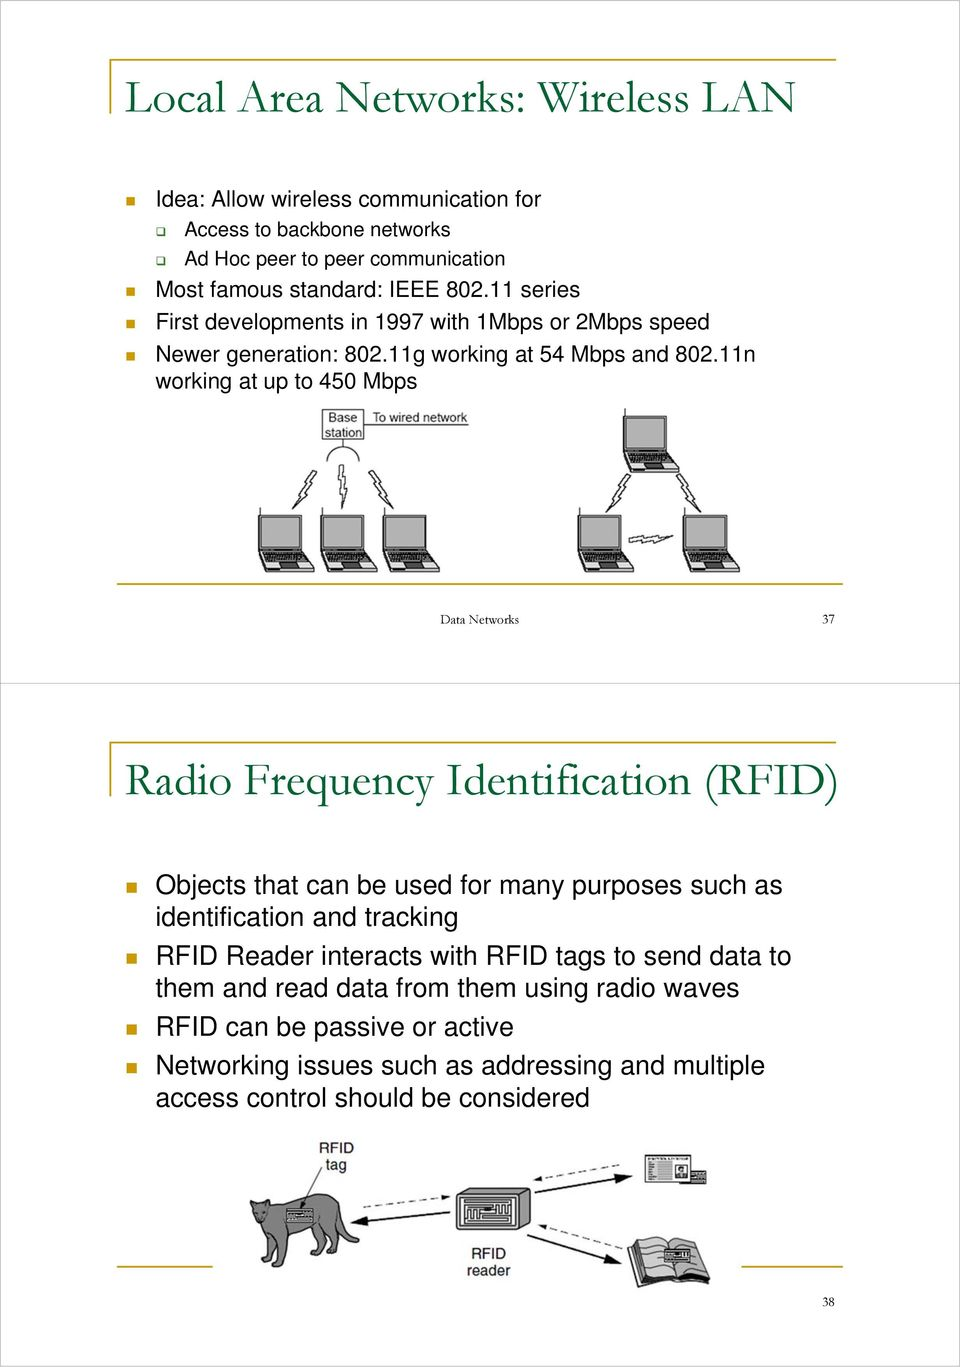 11n working at up to 450 Mbps Data Networks 37 Radio Frequency Identification (RFID) Objects that can be used for many purposes such as identification and tracking RFID